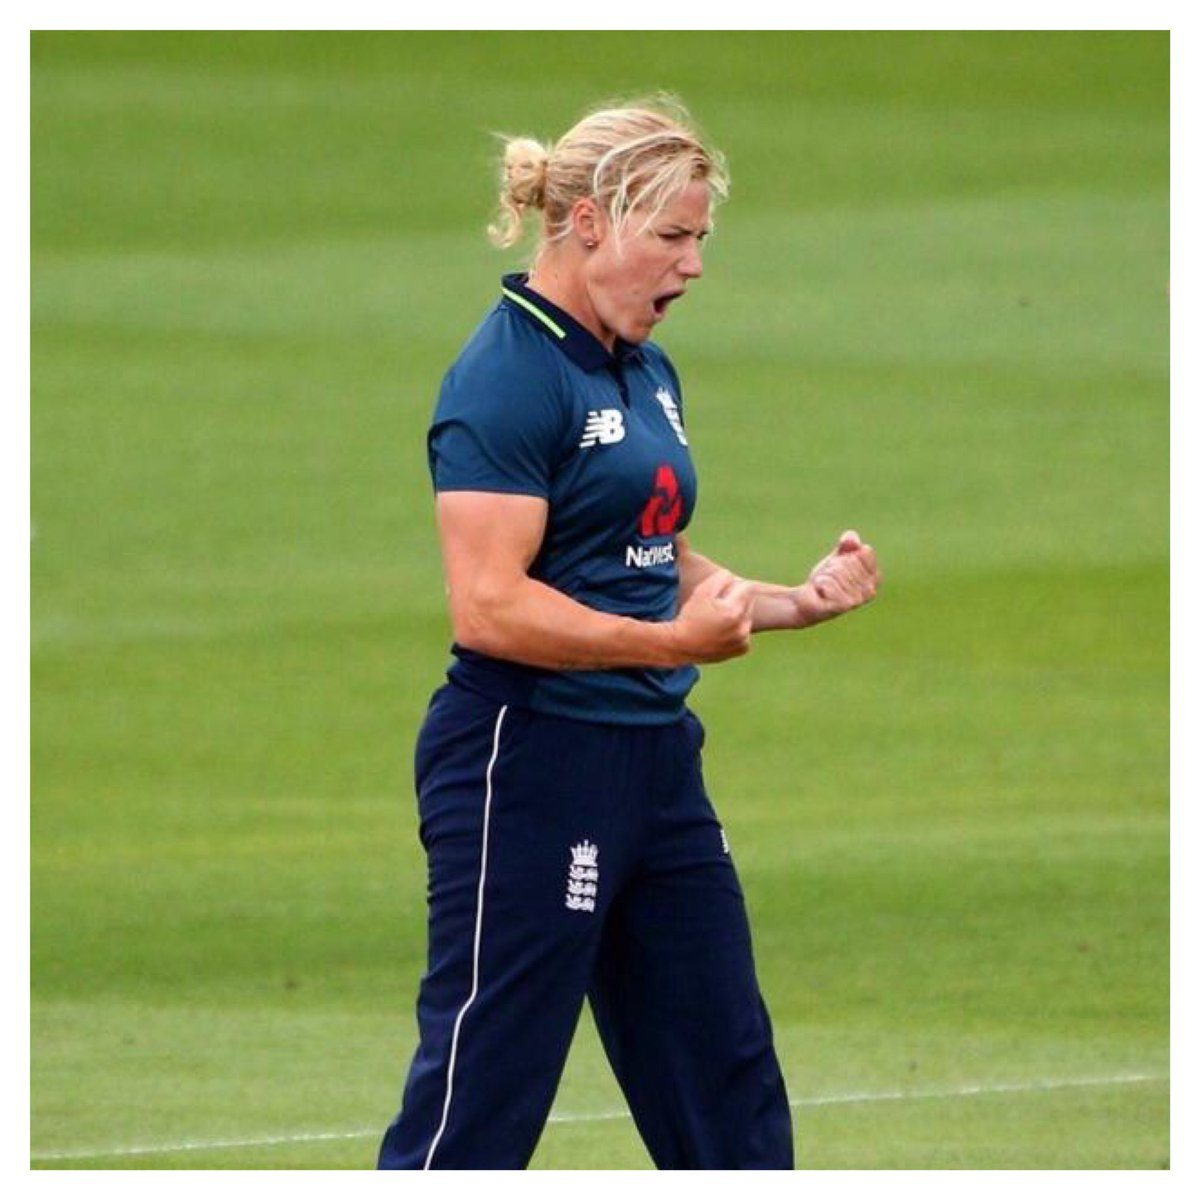 We celebration network partner @kbrunt26 during #womenscricketmonth 🏏  Can't wait to cheer her and the team on for the rest of the Internationals 🙌🏽 #TripleS #englandcricket #womensinternationals #katherinebrunt #cricket #networkpartner https://t.co/7Oo2jLmJ8c